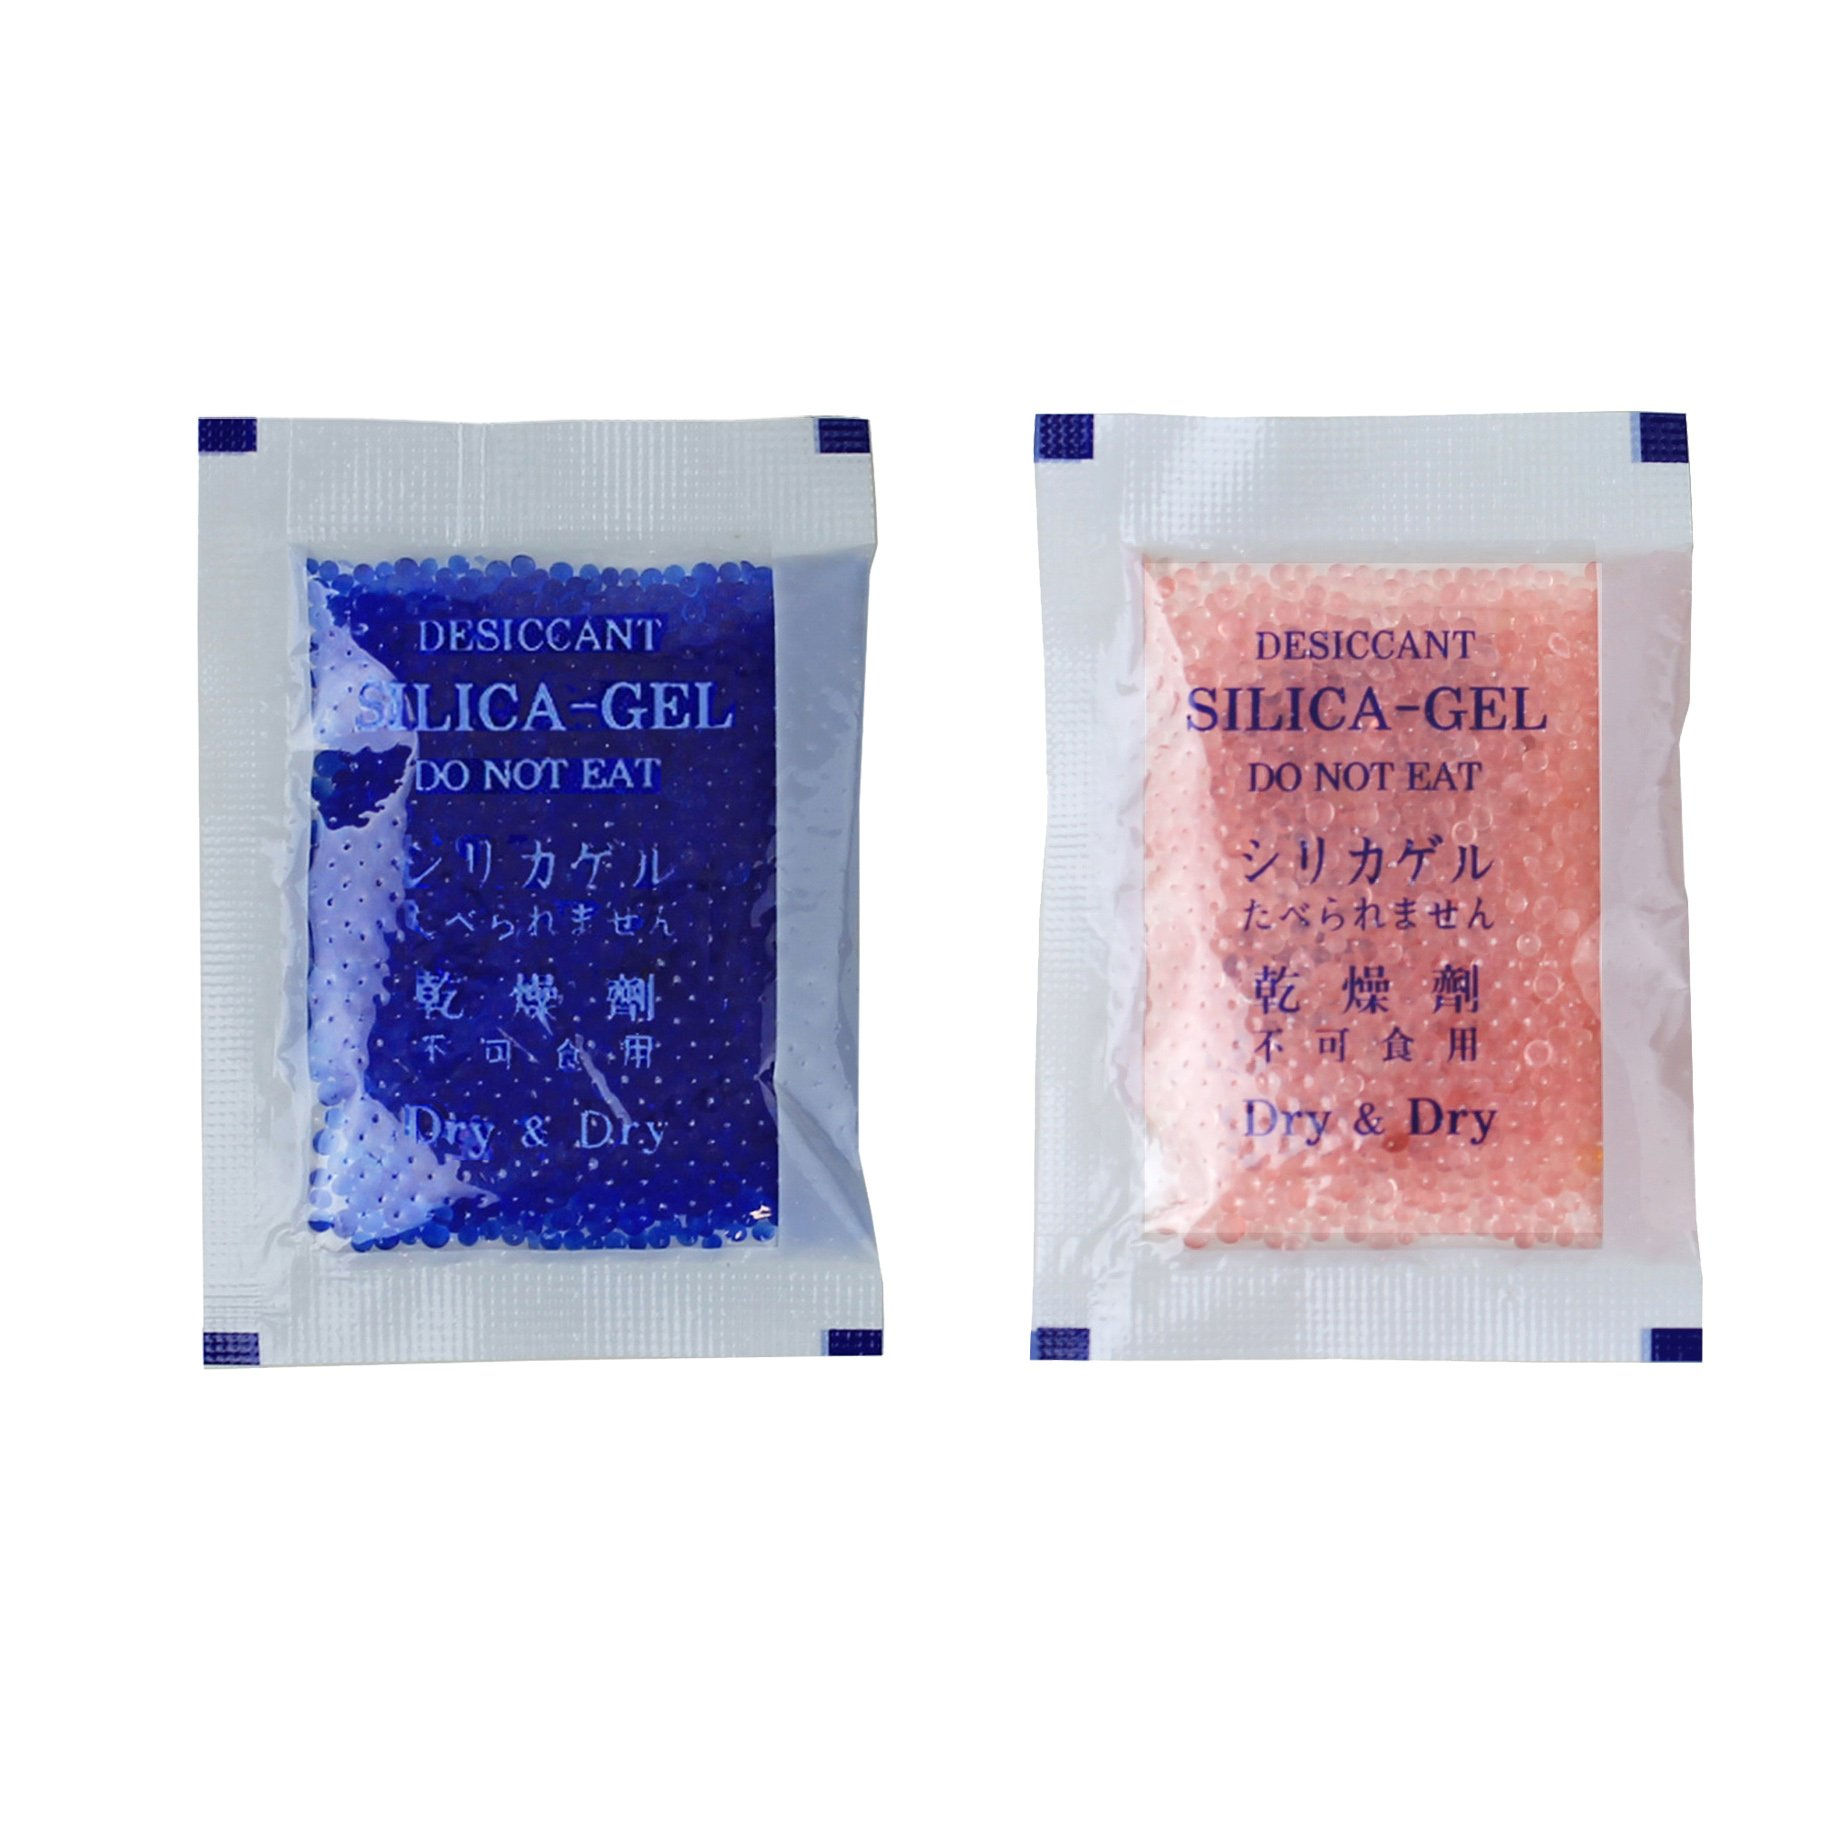 [27 Packs] 10Gram Blue ''Dry & Dry'' Premium Indicating(Blue to Pink) Silica Gel Packets - Rechargeable(UPGRADED) by Dry & Dry